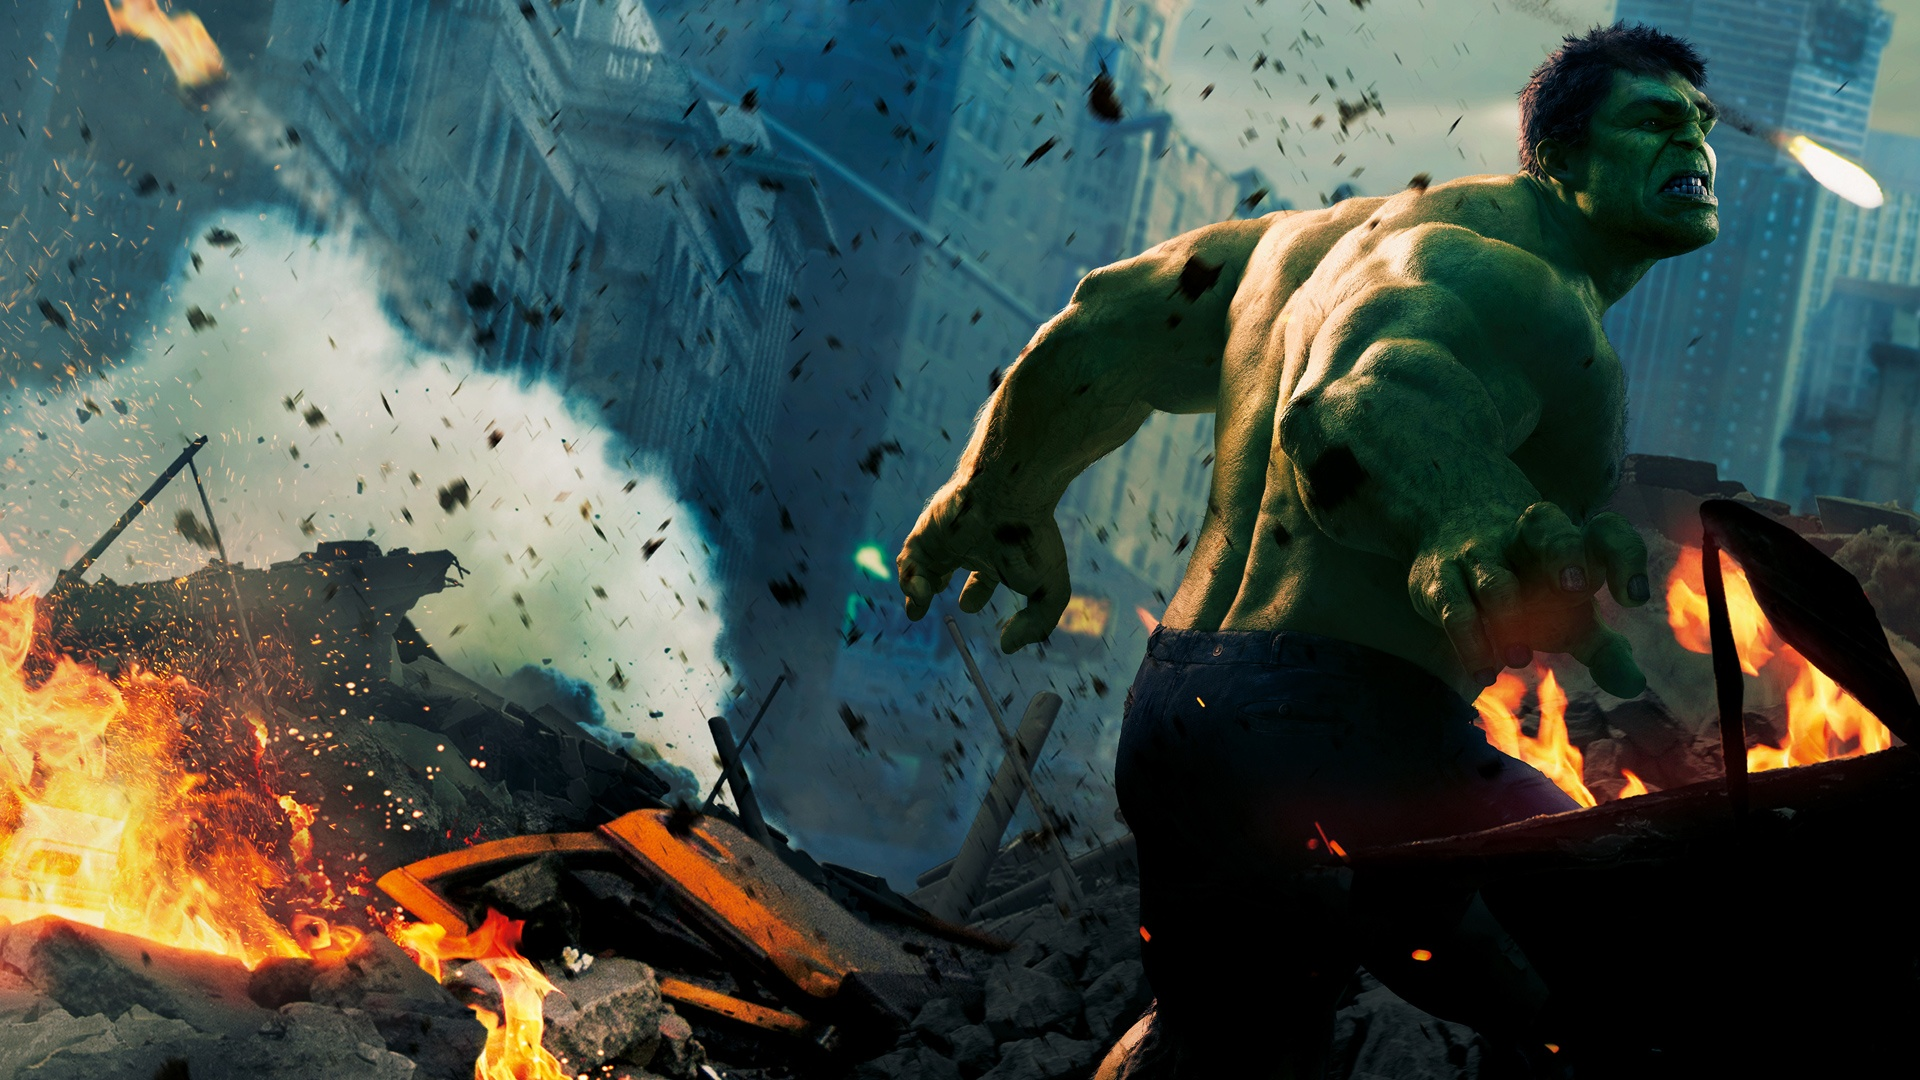 Hulk The Hulk Avengers Fire HD wallpaper movies and tv series 1920x1080